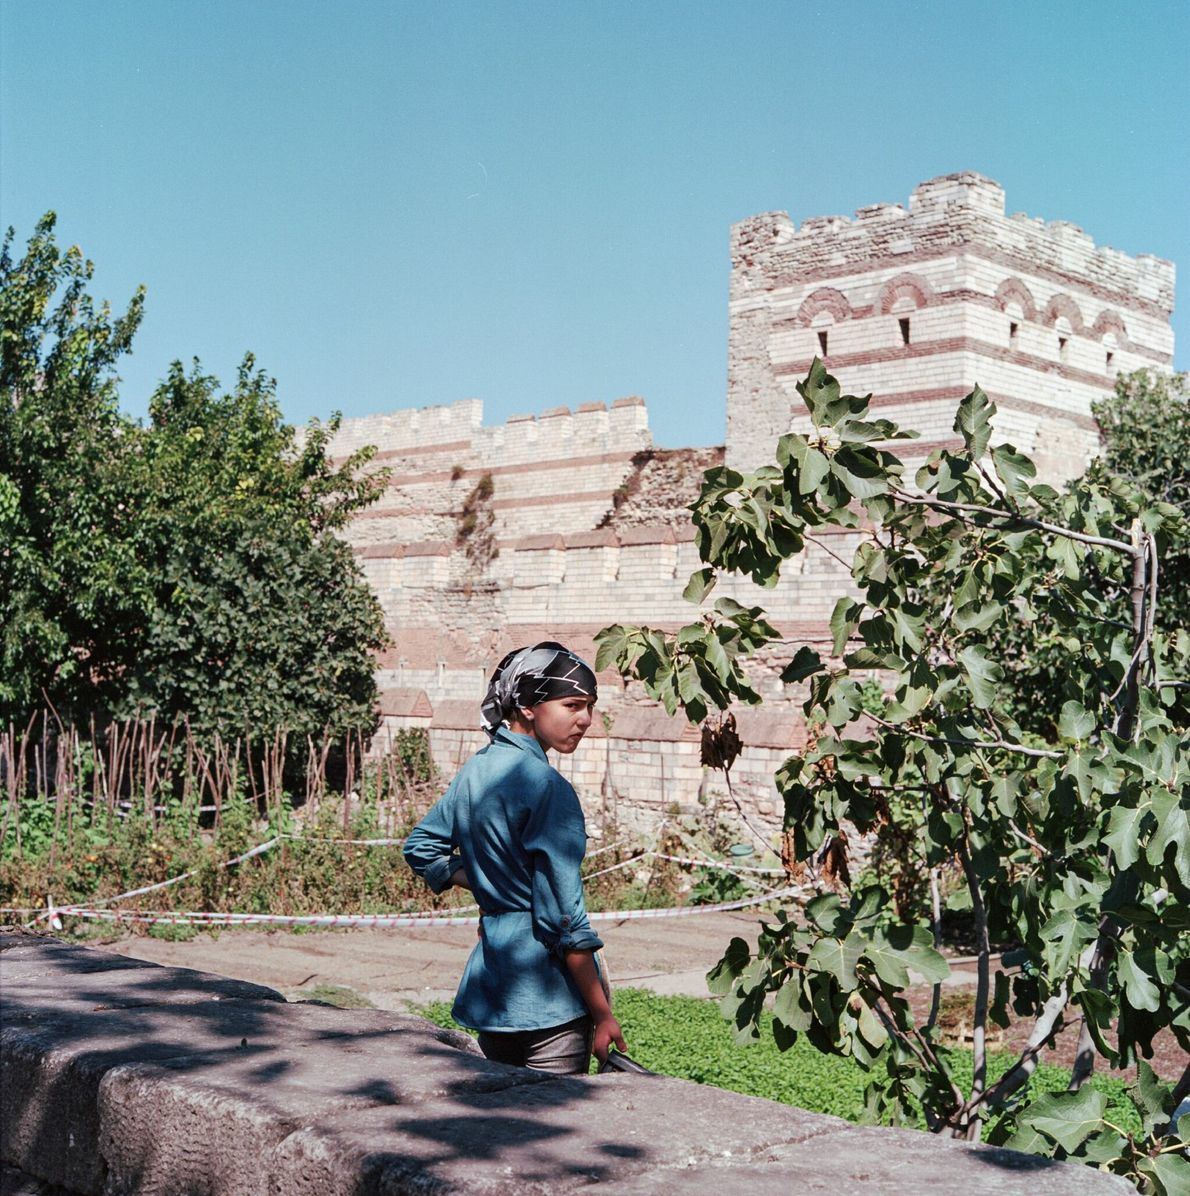 Vegetables and fruit have been grown for centuries in urban farms around the remnants of Istanbul's ...